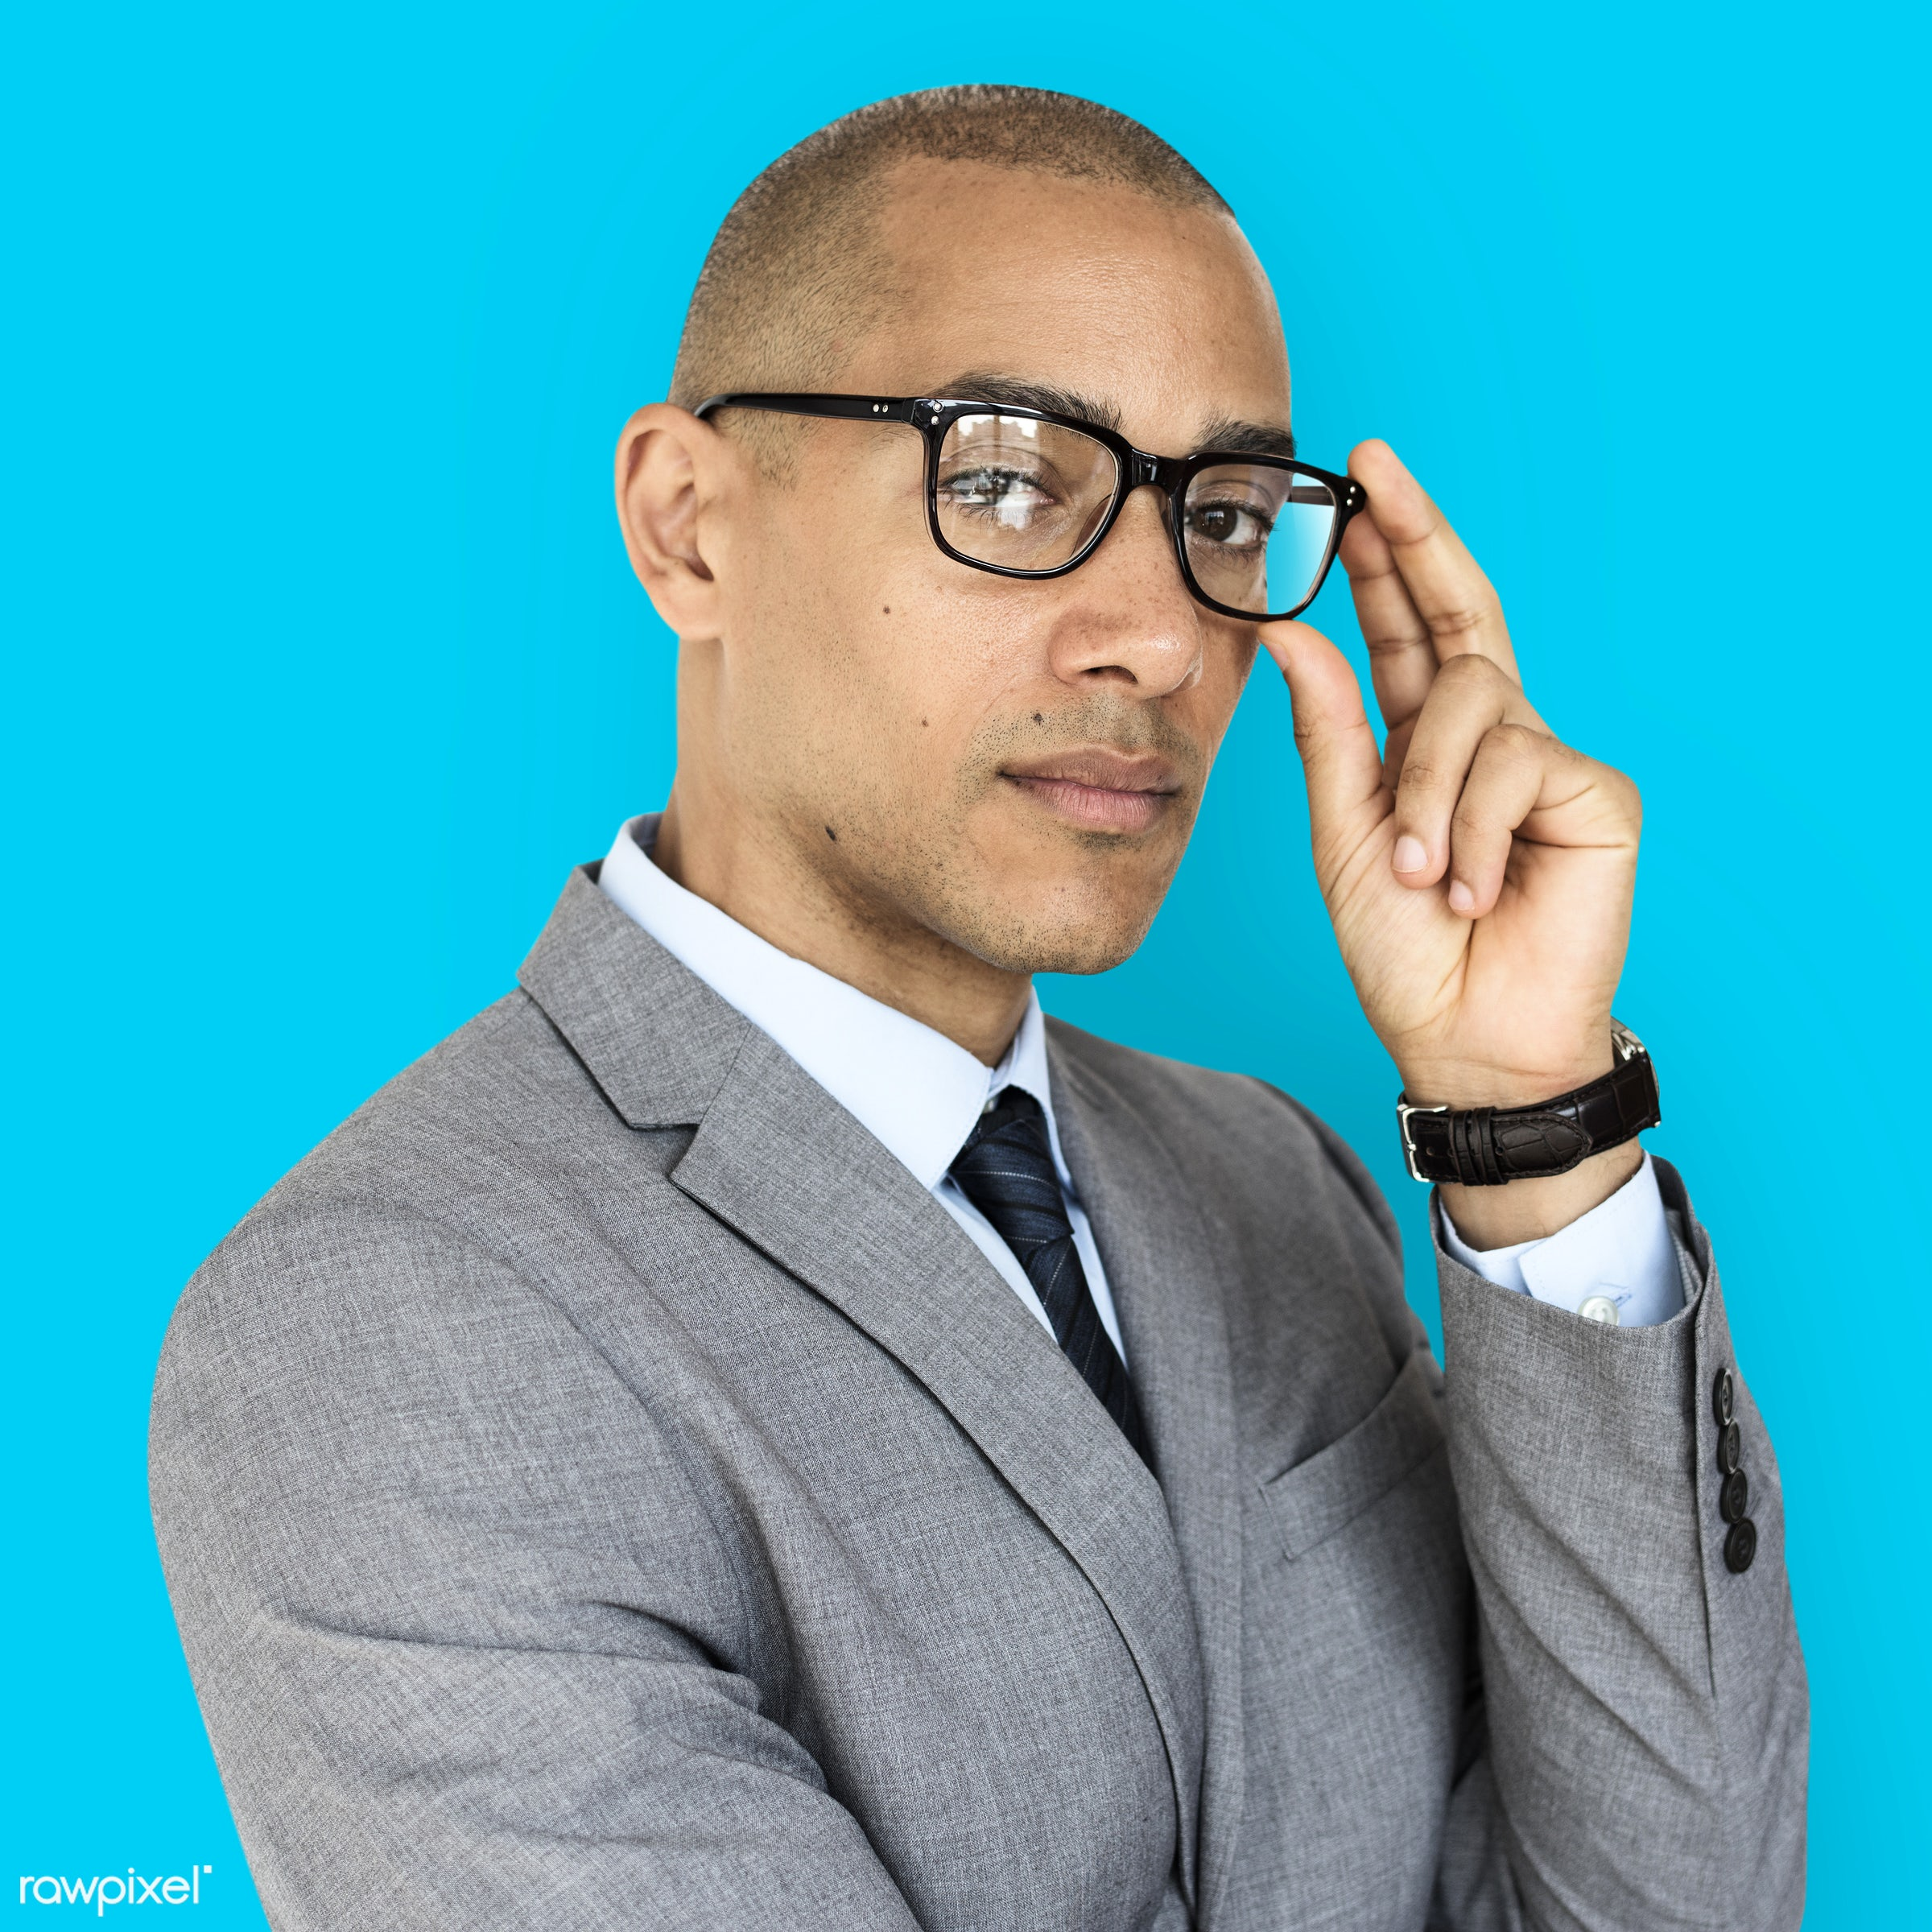 expression, studio, person, glasses, business wear, people, business, pose, smart looking, focused, serious, black, formal...